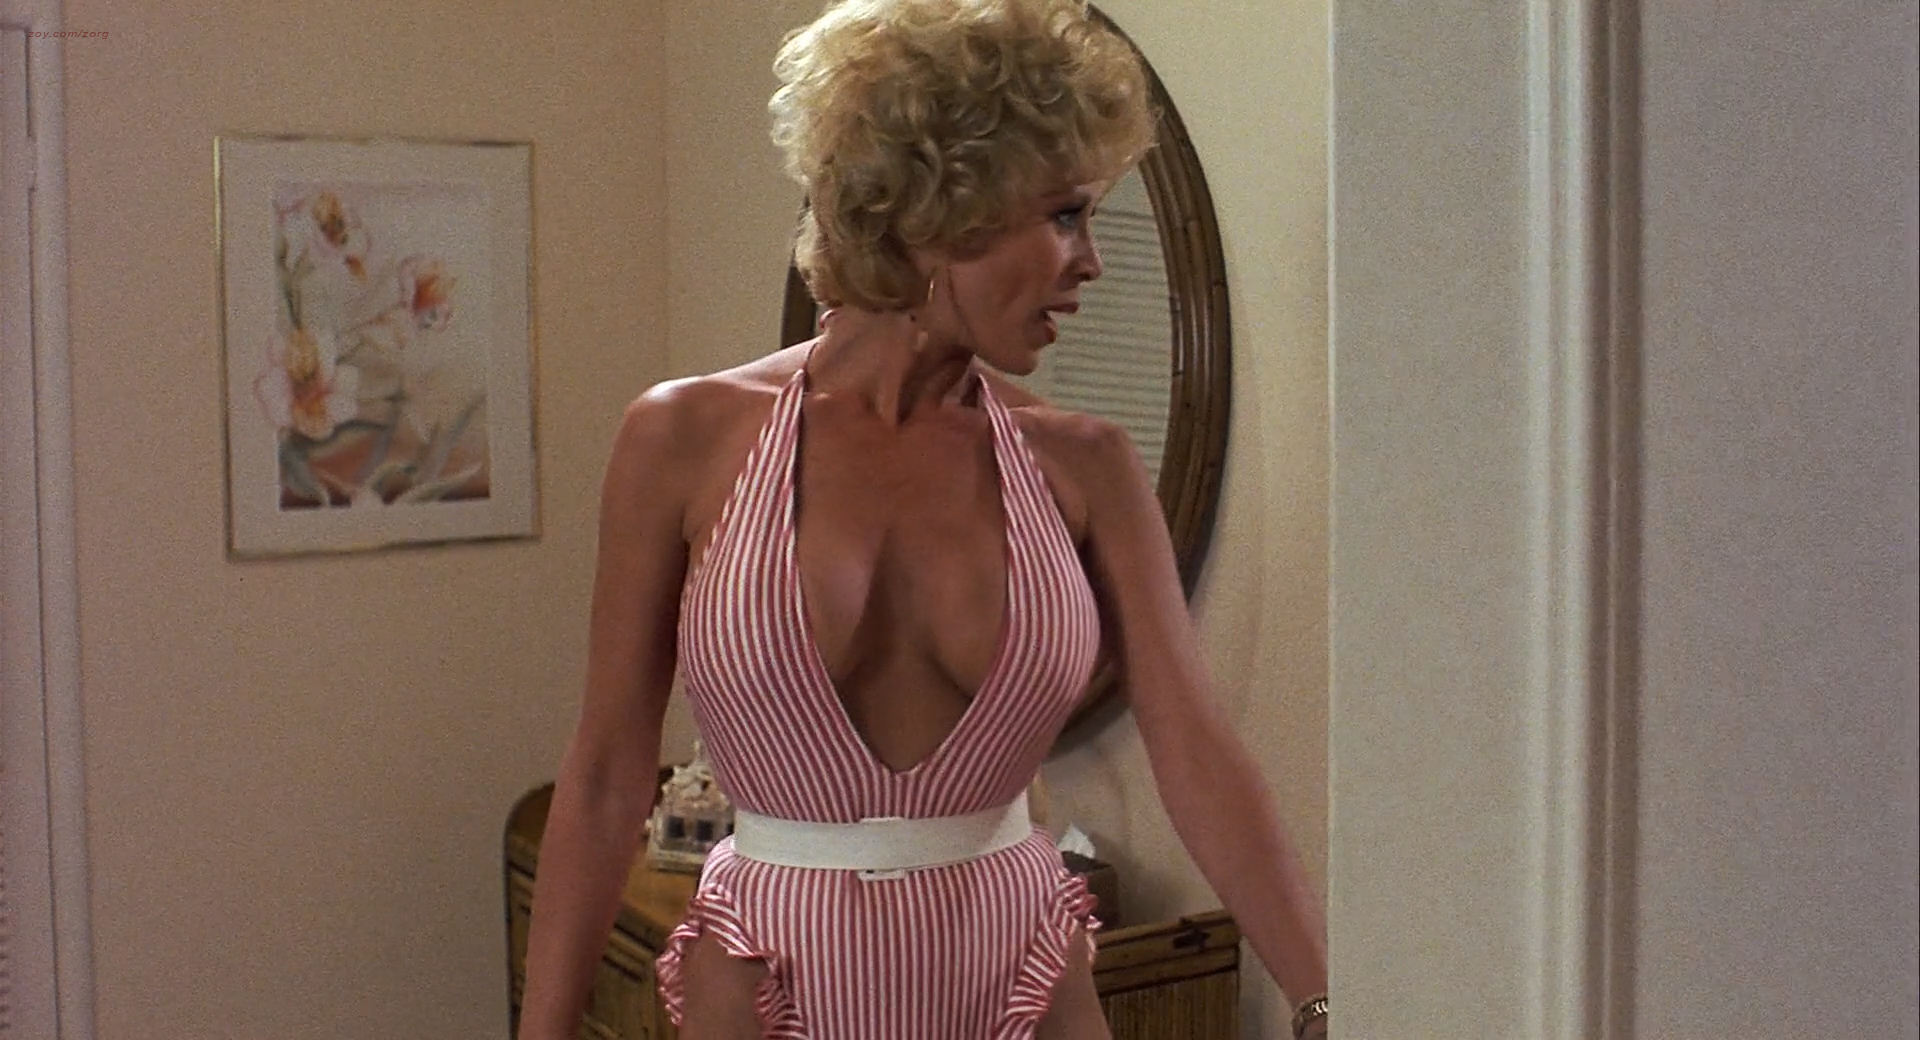 Confirm. Leslie easterbrook naked pics